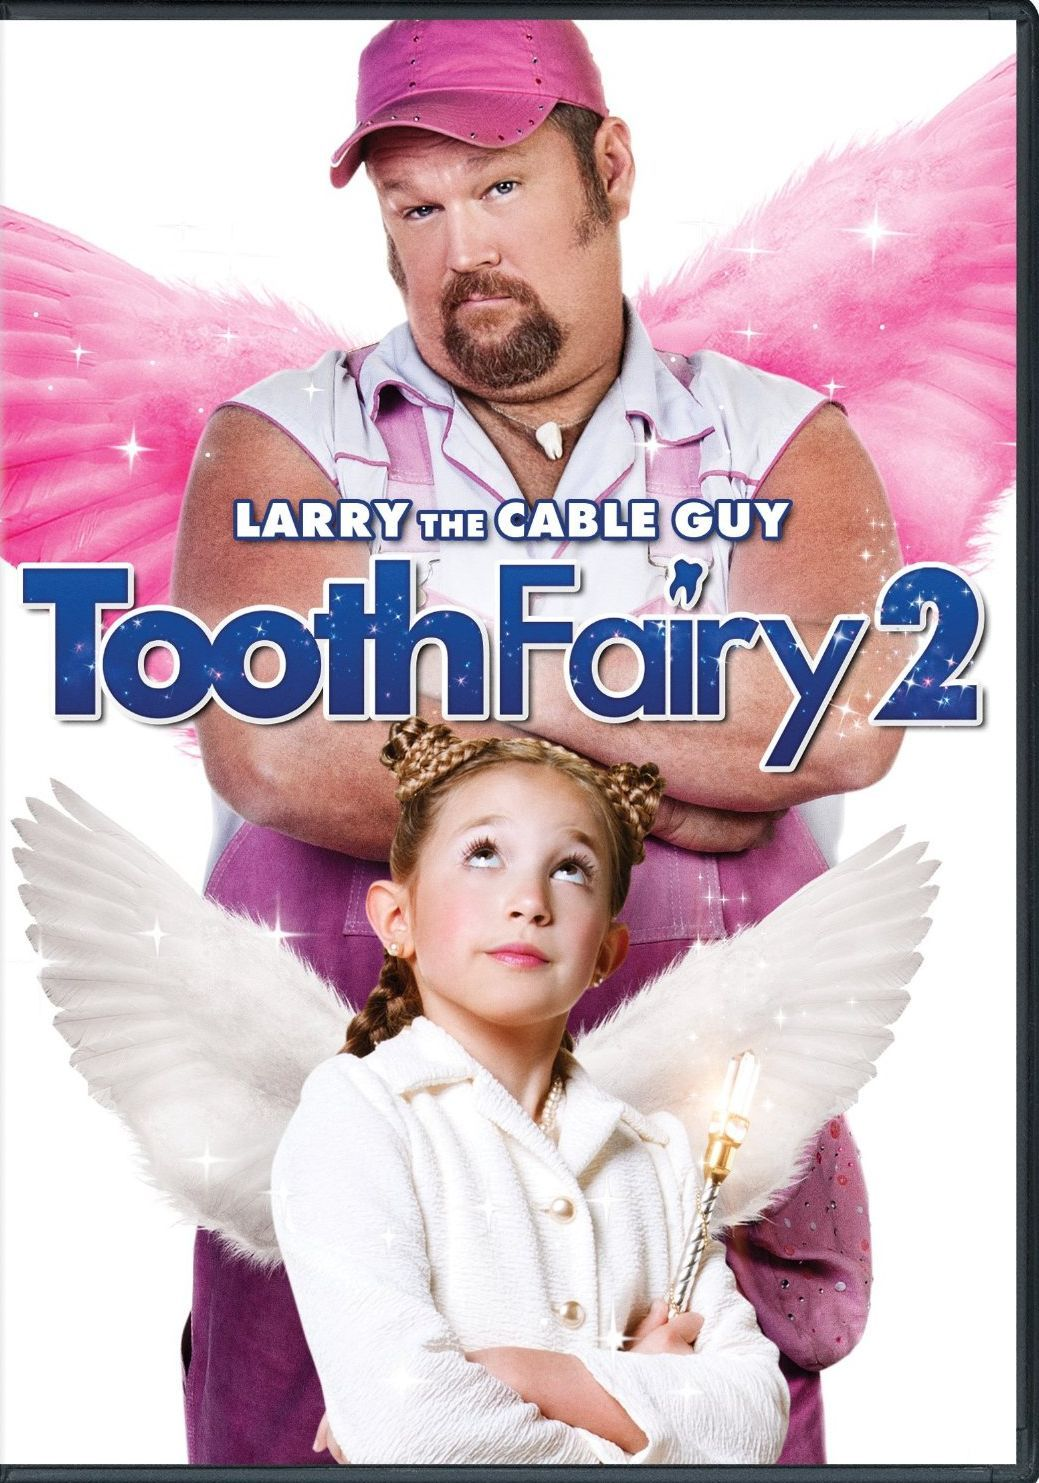 Download Filem Tooth Fairy 2 2012 Dvdrip Tooth Fairy 2 2012 DVDRip XviD DOCUMENT Page 1 of 1 View topic x